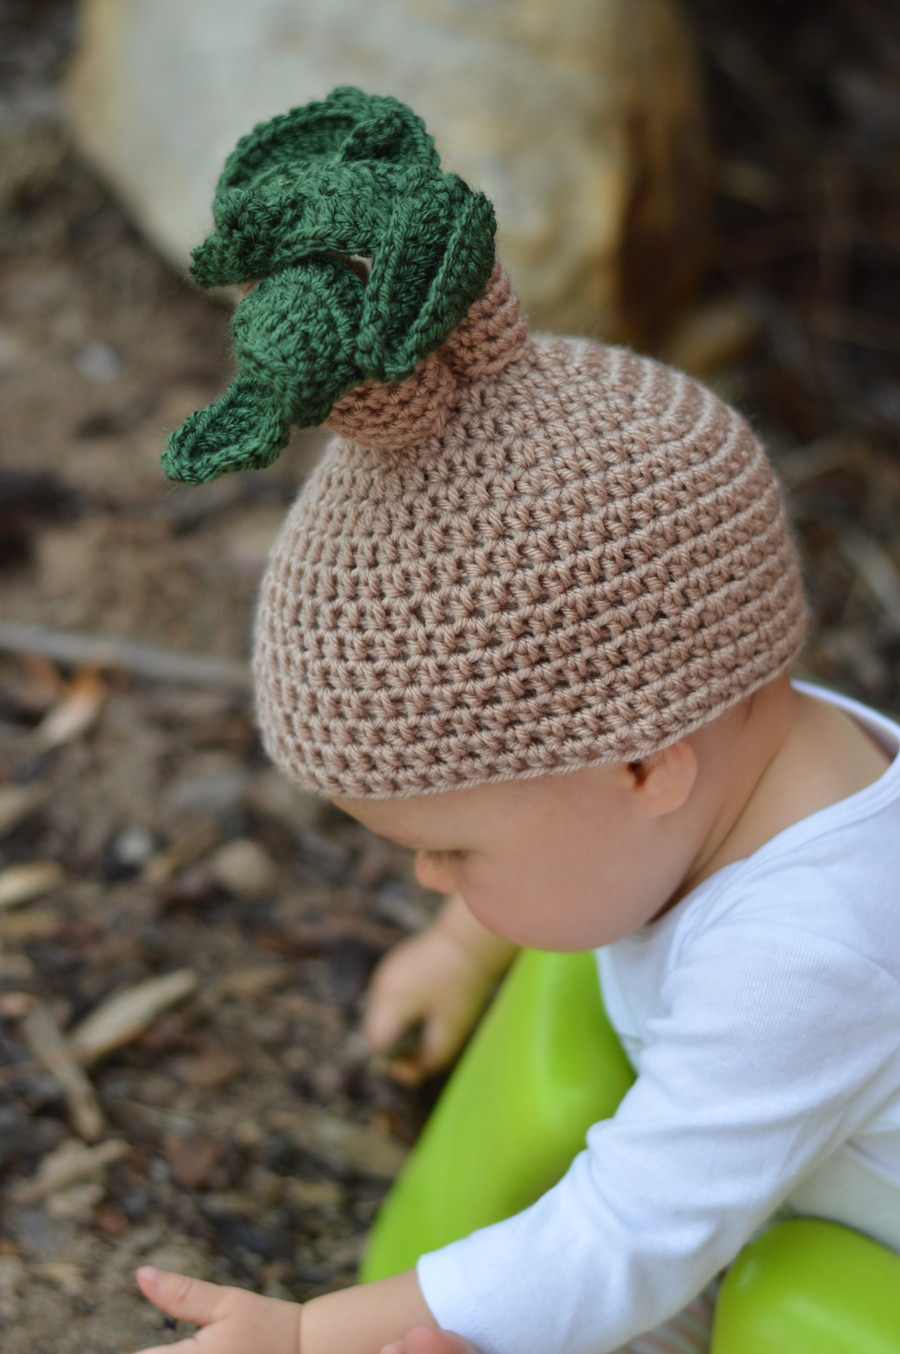 40d4ca122da Crochet Mandrake Baby Hat - Whistle and Ivy